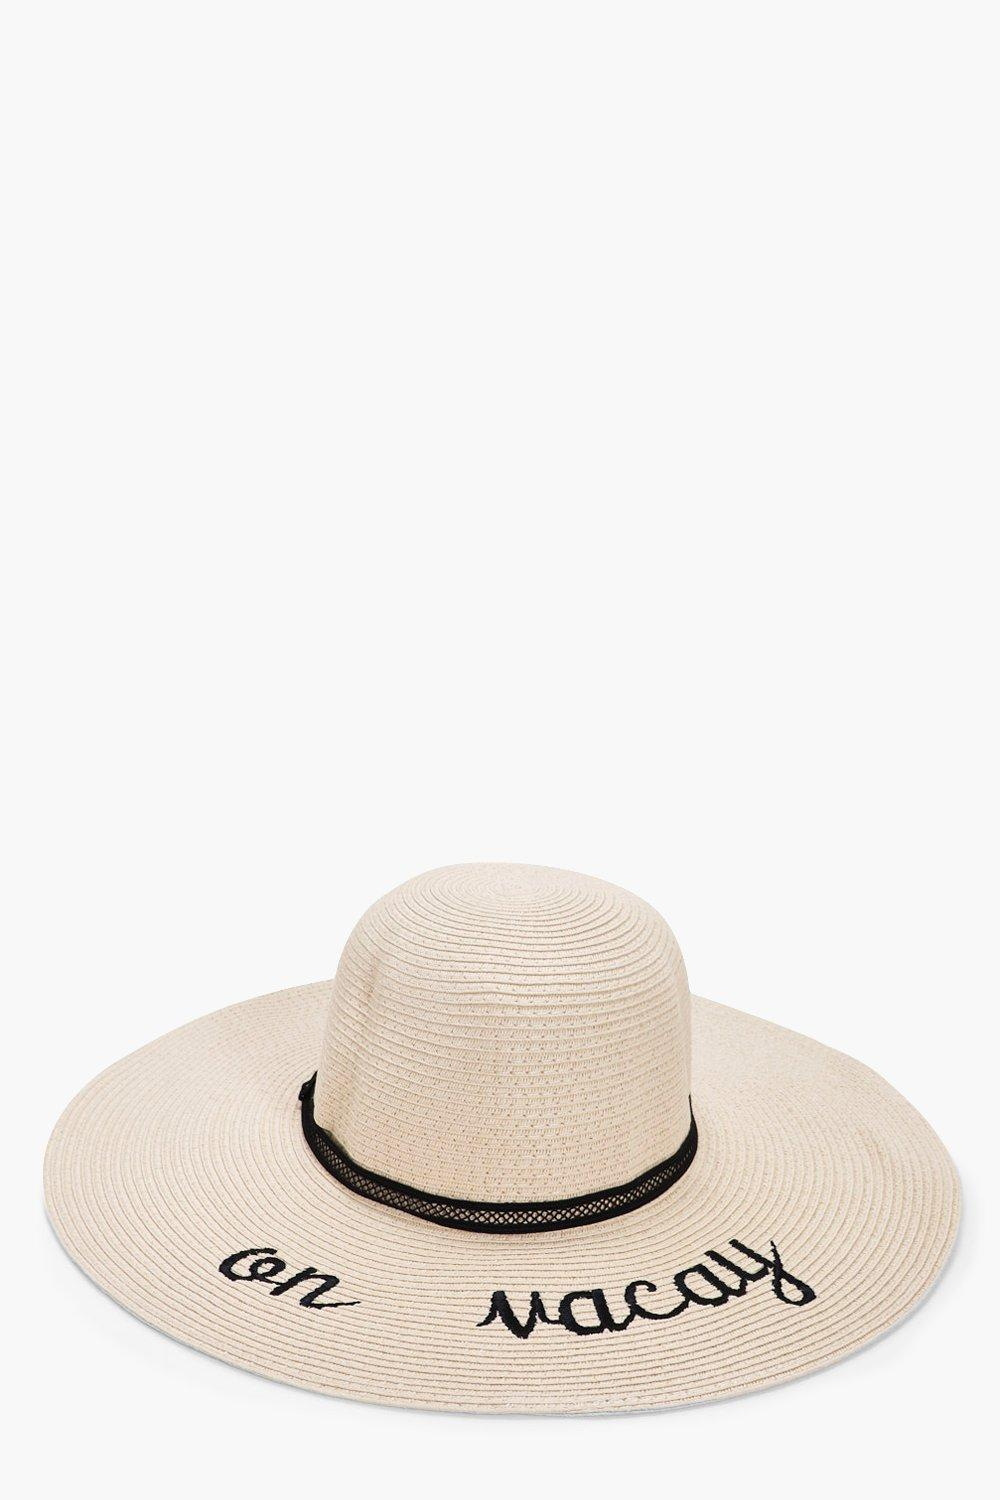 On Vacay Straw Floppy Hat - cream - Skye On Vacay